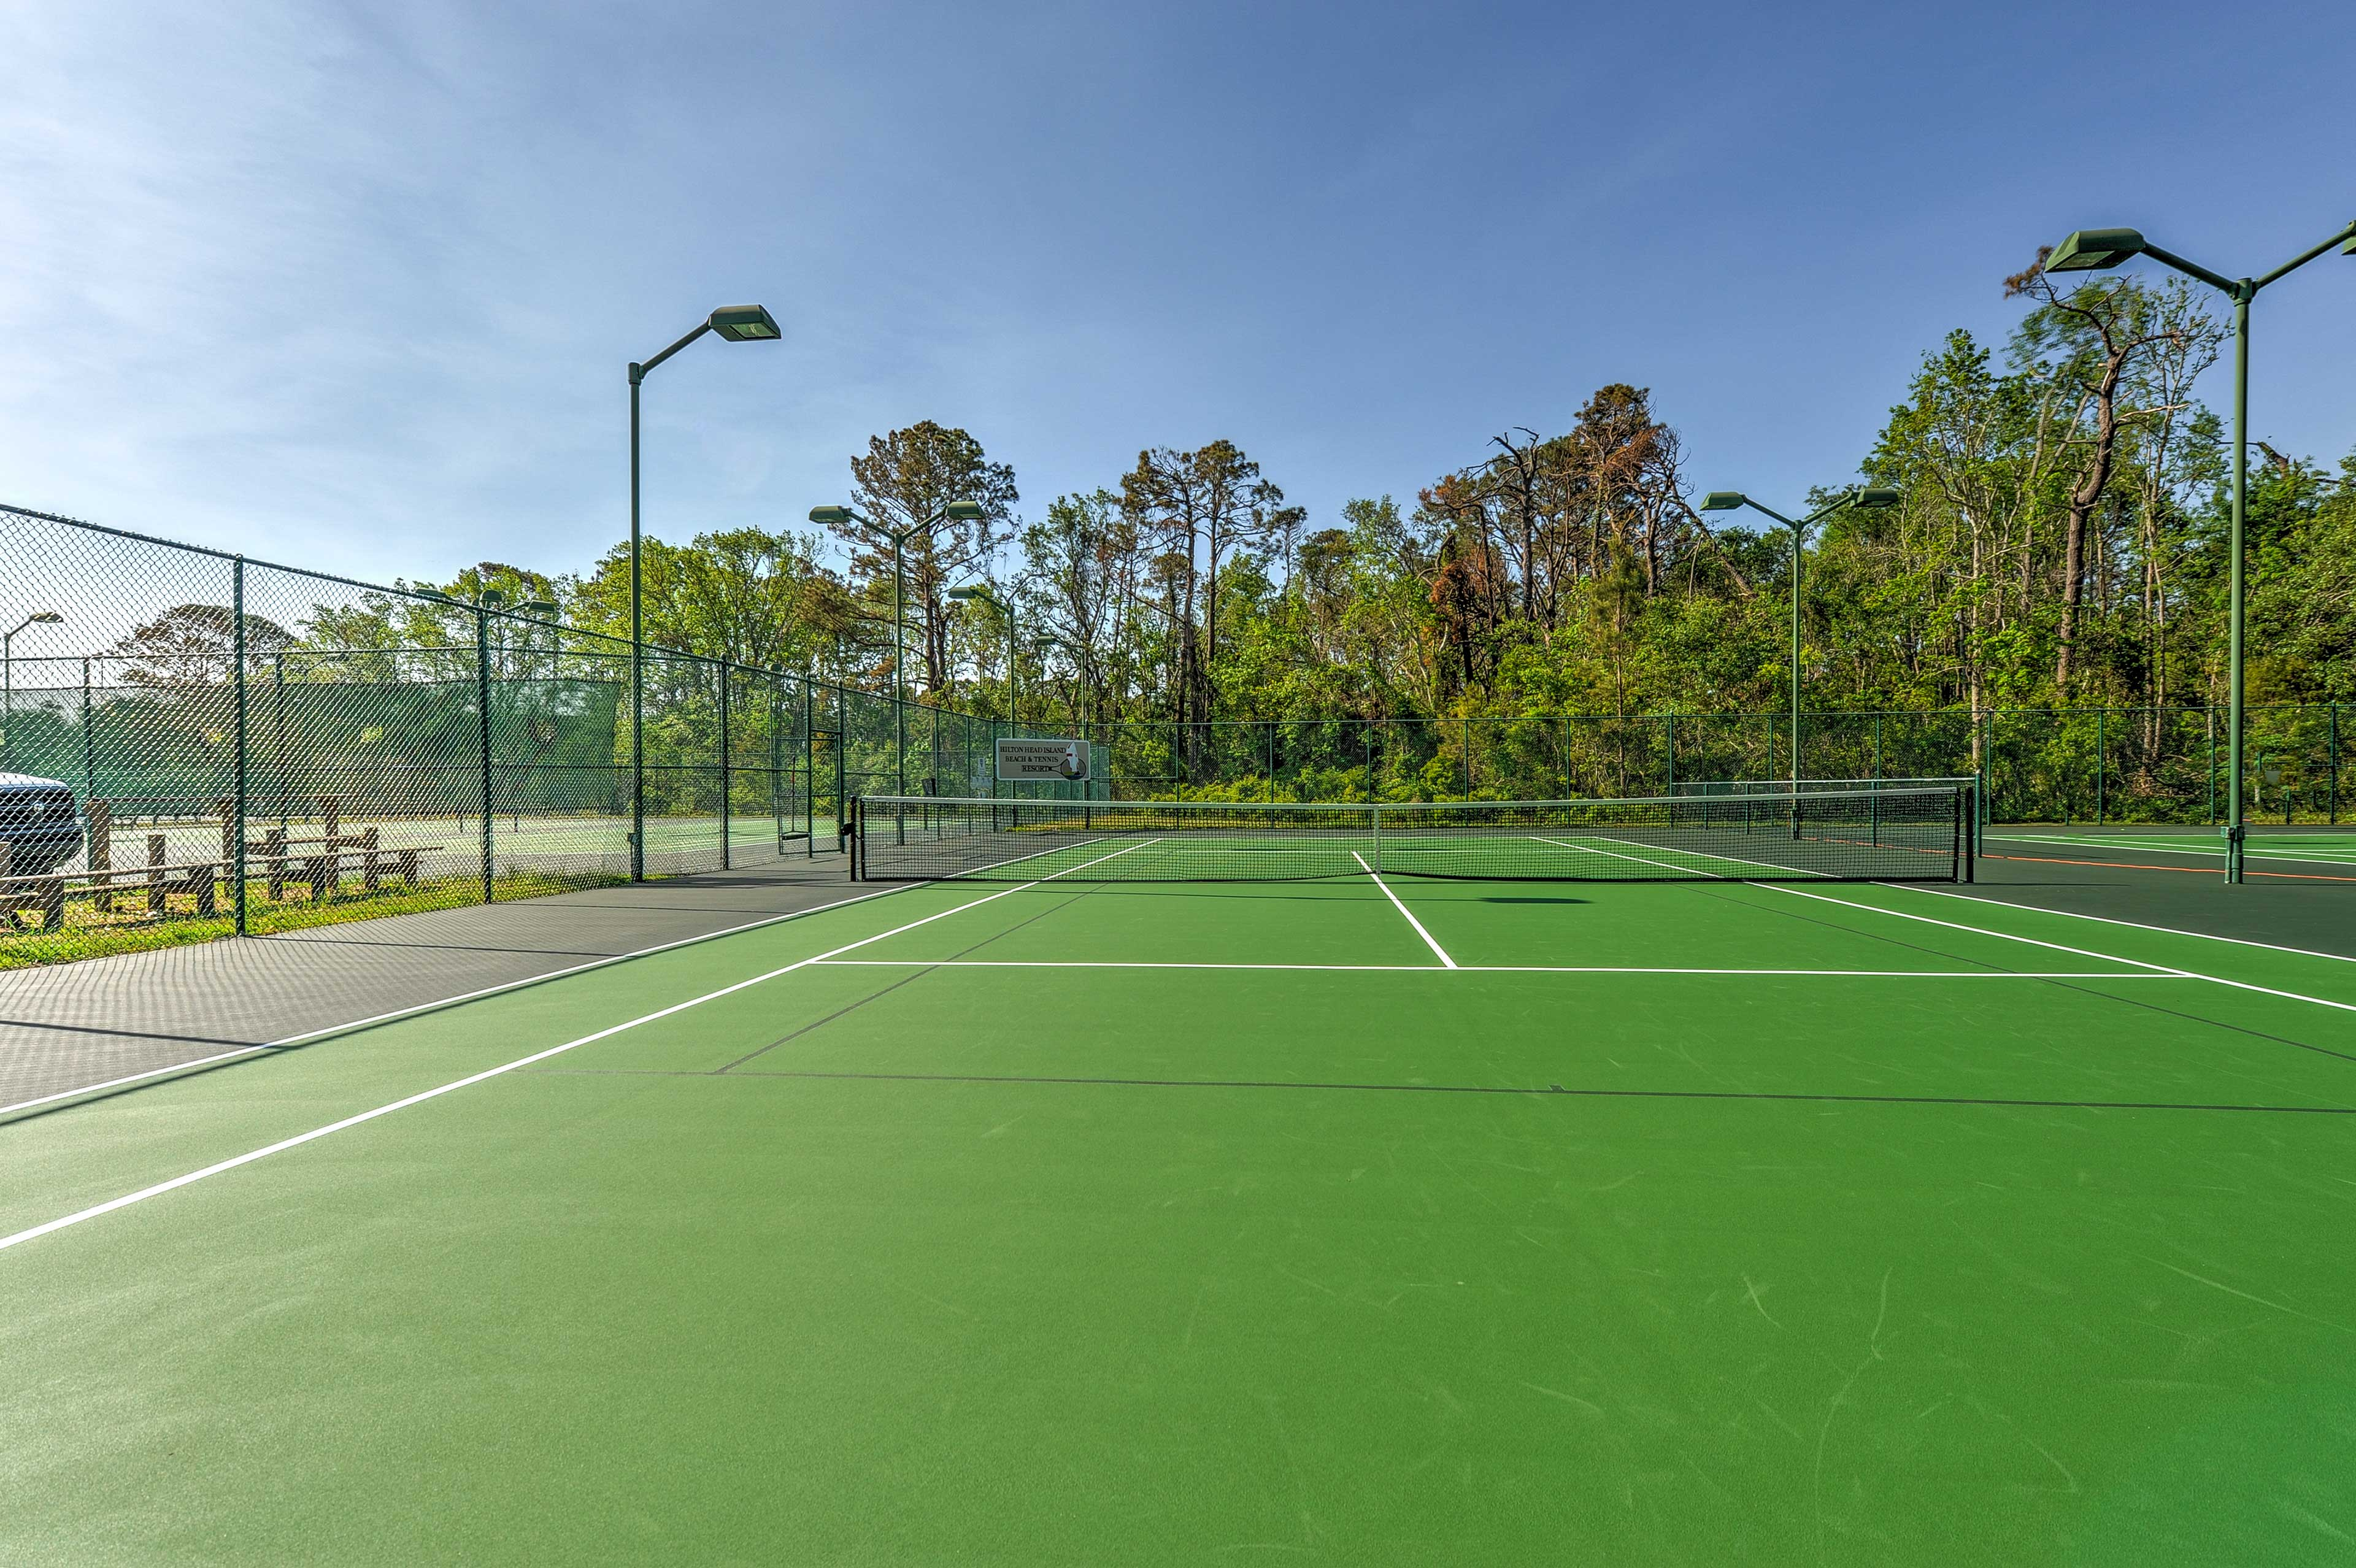 Get a game in on the tennis, racketball and shuffleboard courts.